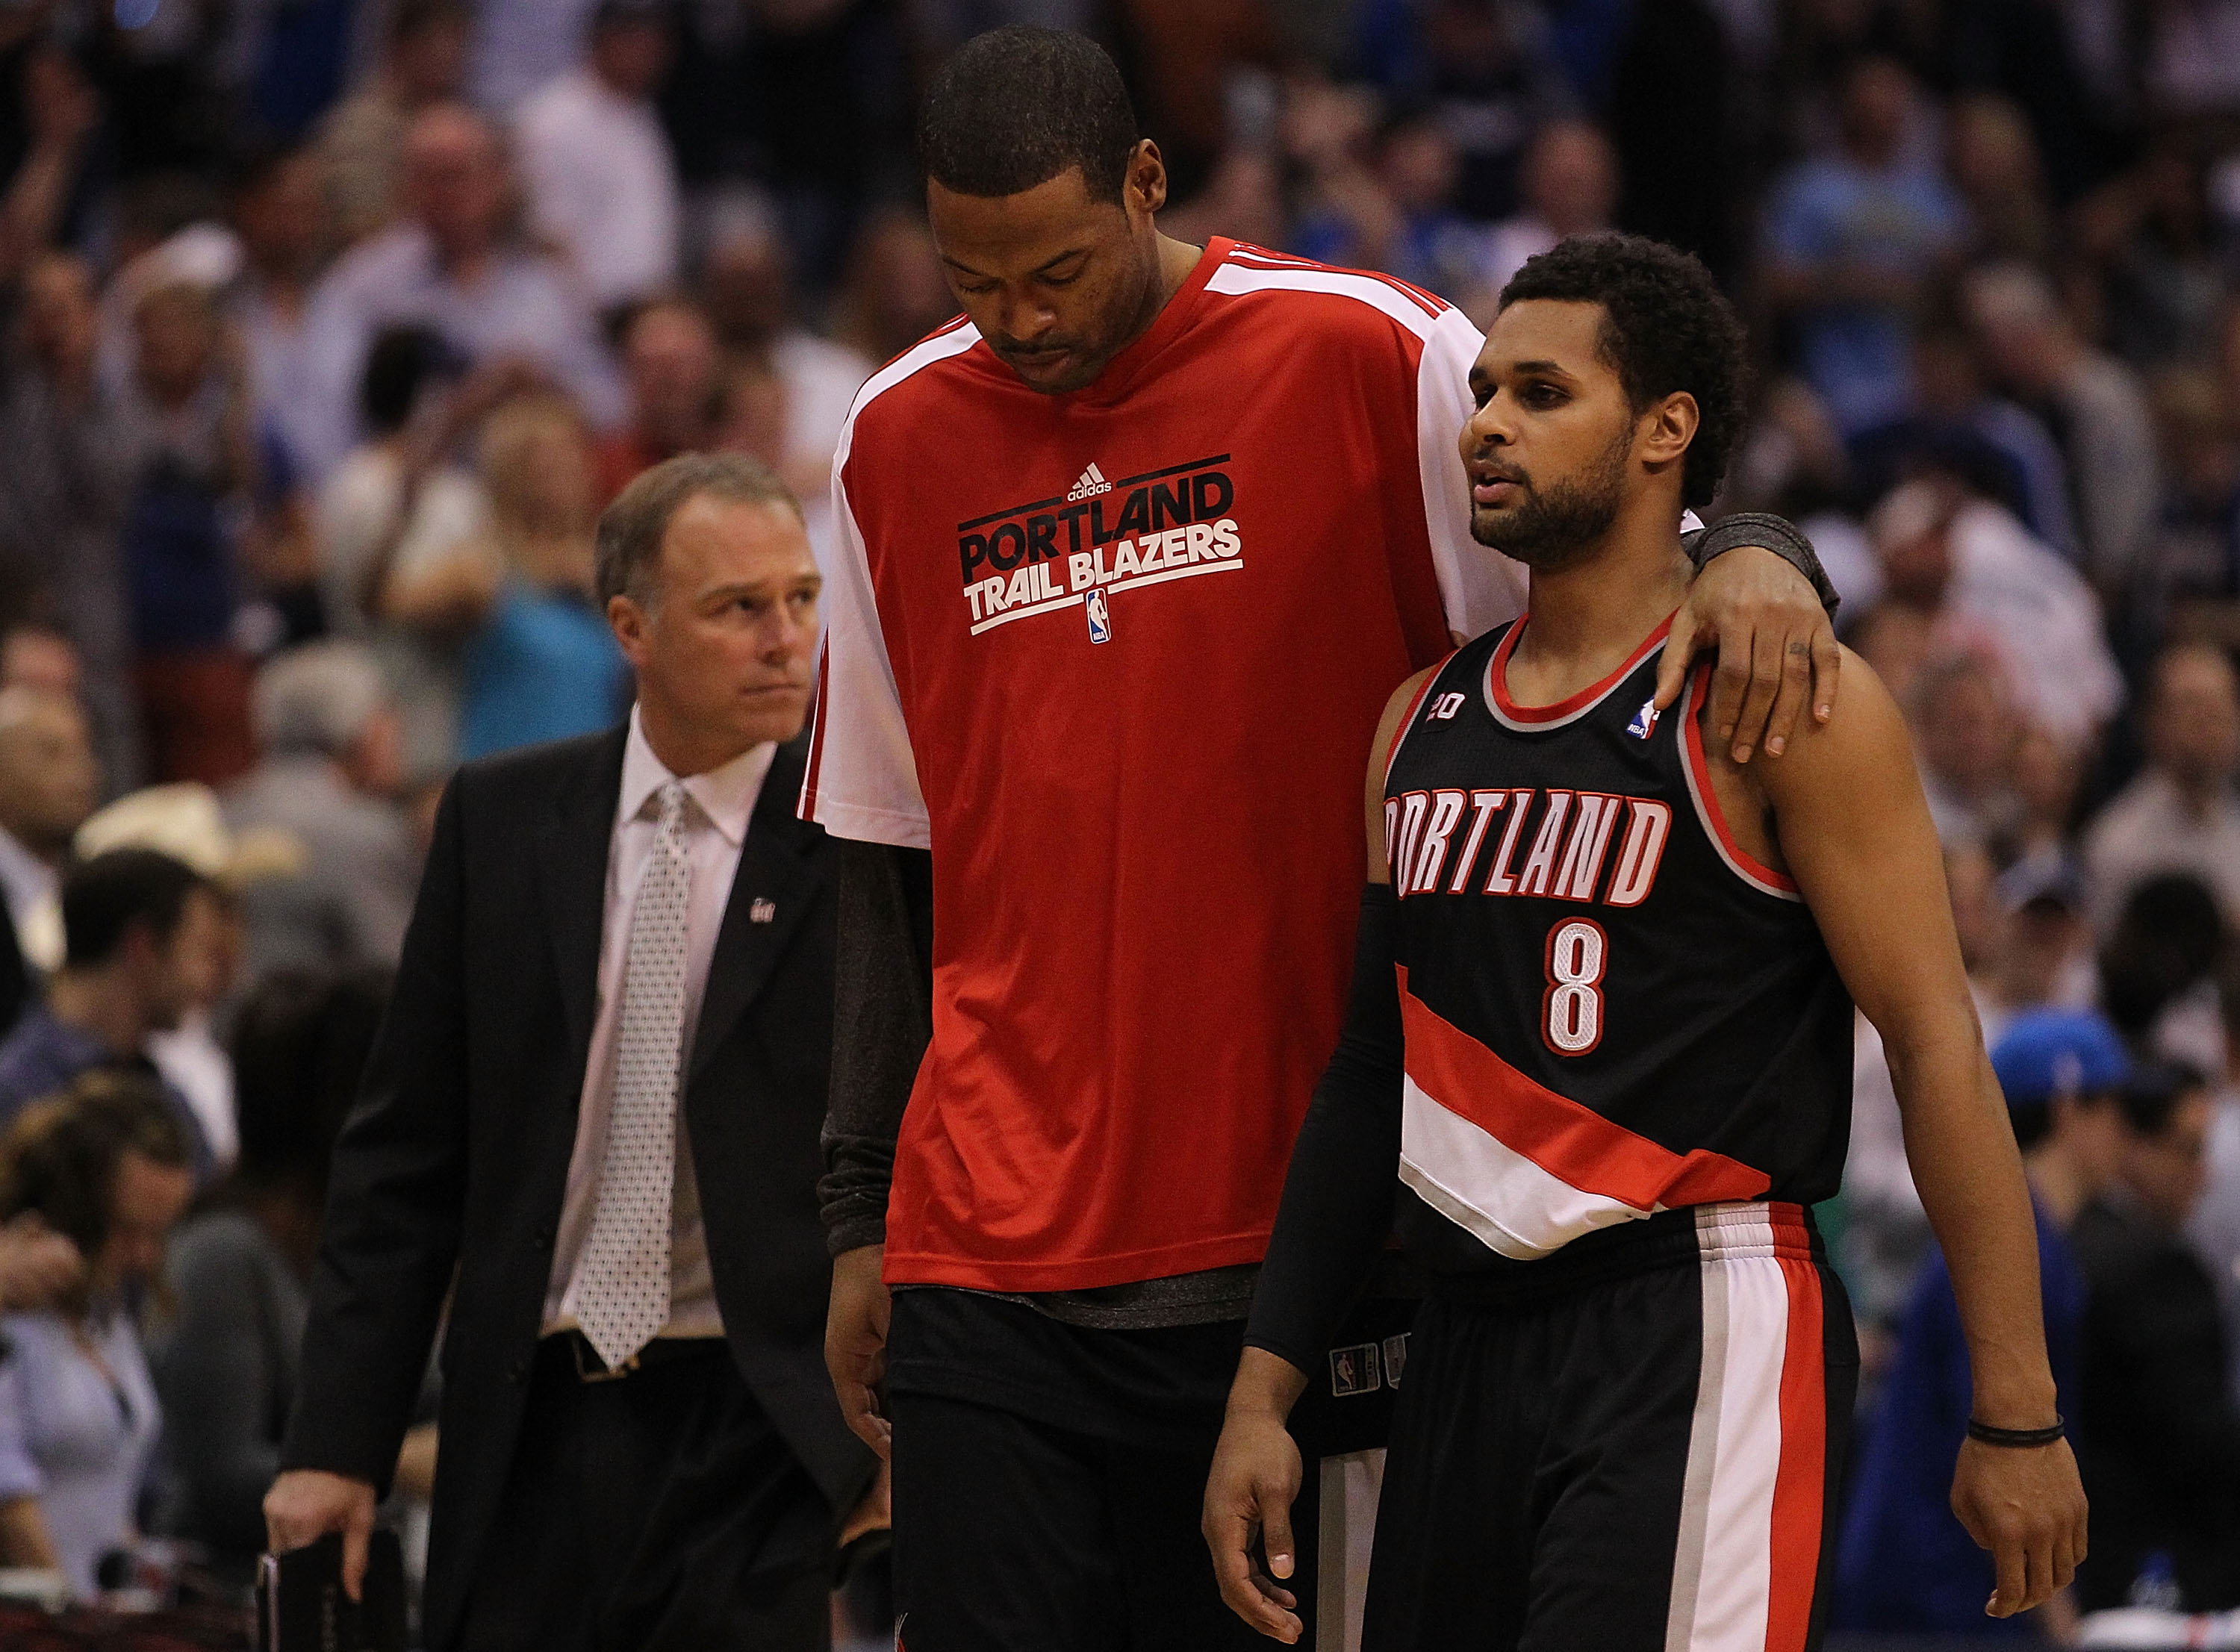 DALLAS, TX - APRIL 25:  (L-R) Marcus Camby #23 and Patrick Mills #8 of the Portland Trail Blazers walk off the court after a loss against the Dallas Mavericks in Game Five of the Western Conference Quarterfinals during the 2011 NBA Playoffs on April 25, 2